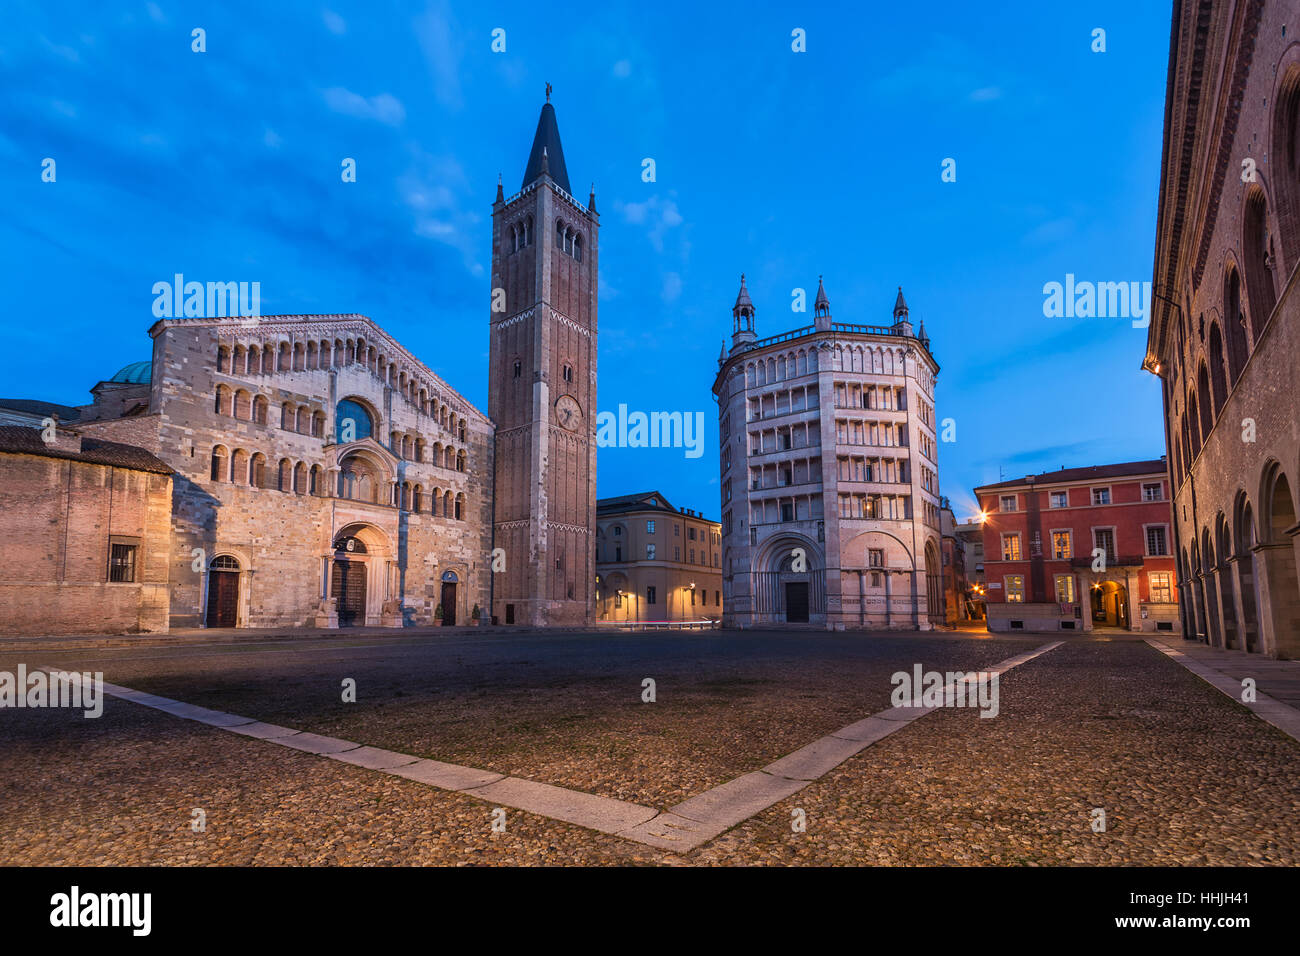 The Cathedral and the Baptistery of Parma at night - Stock Image